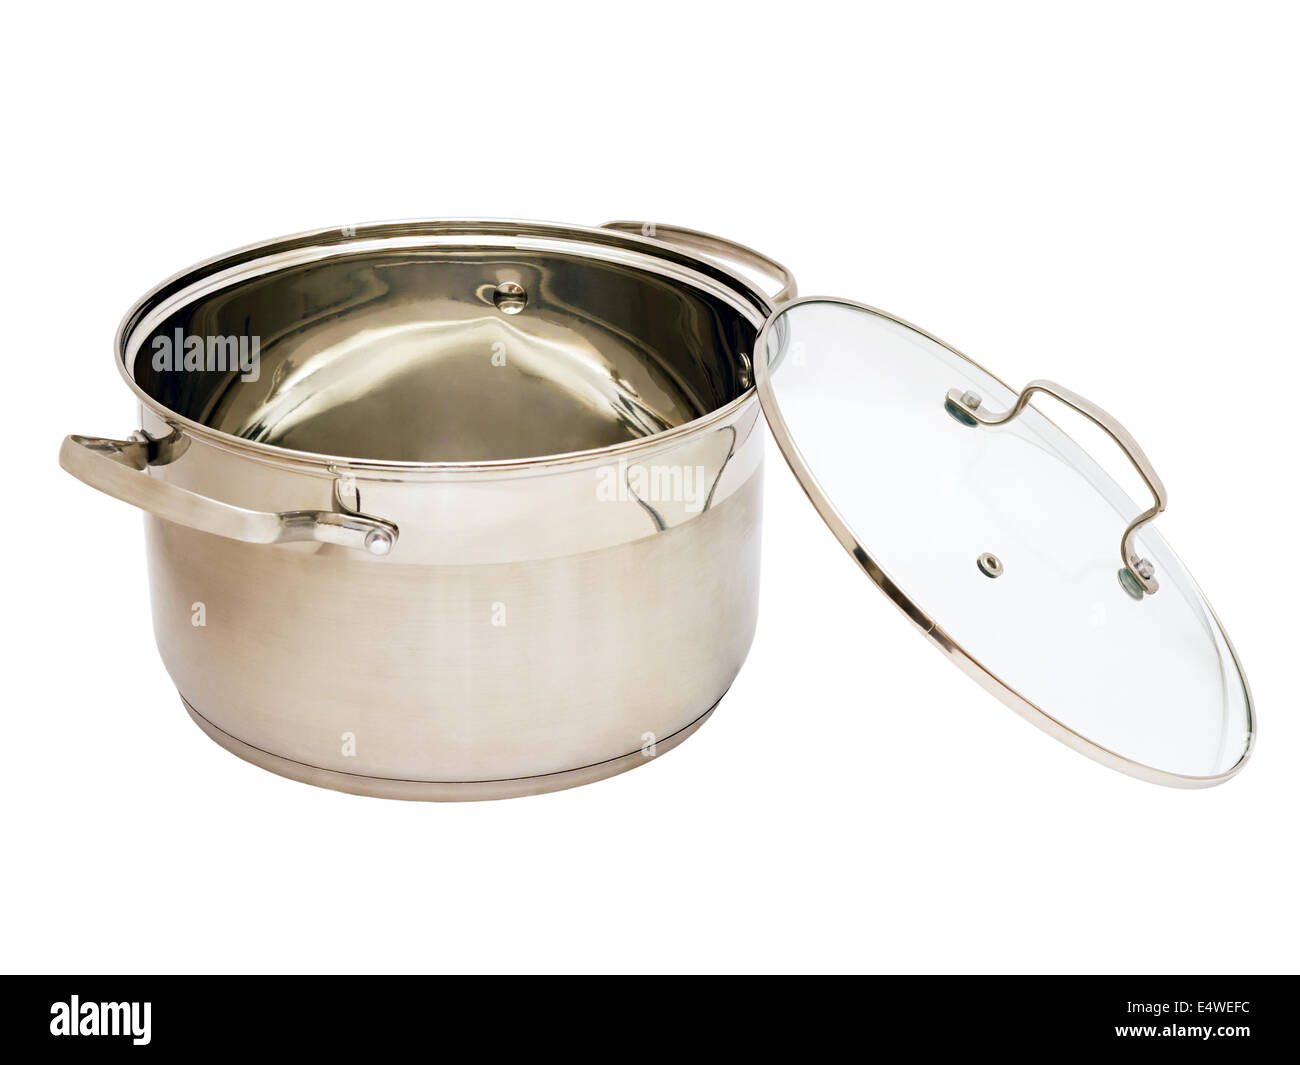 iron pan with glass lid - Stock Image